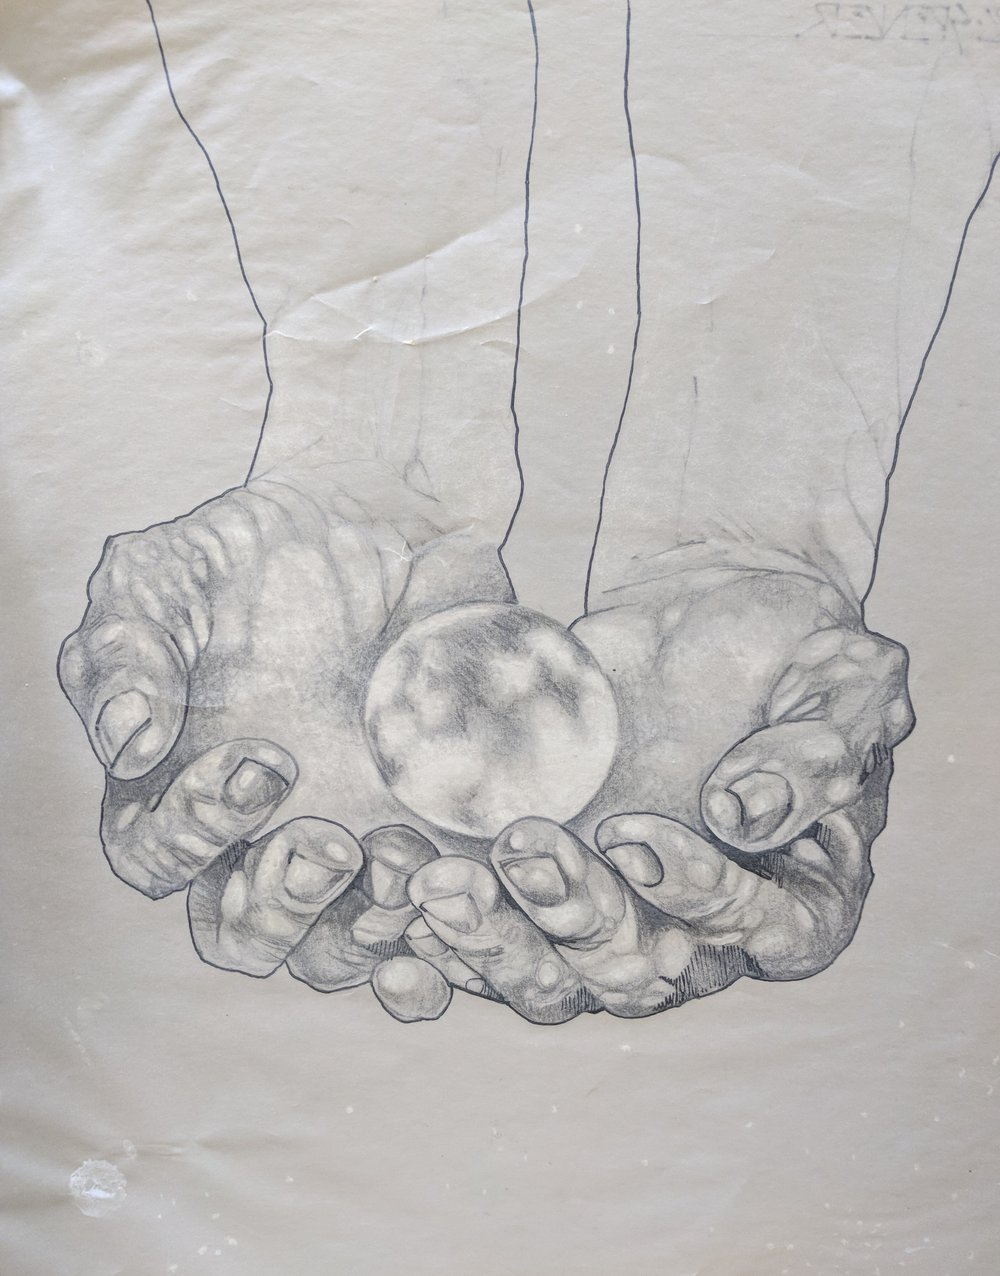 In His Hands. - Graphite and white pencil on transfer paper. Peter C. Spencer original hand-drawn illustration. Biblical imagery. Property of Peter C. Spencer (c).